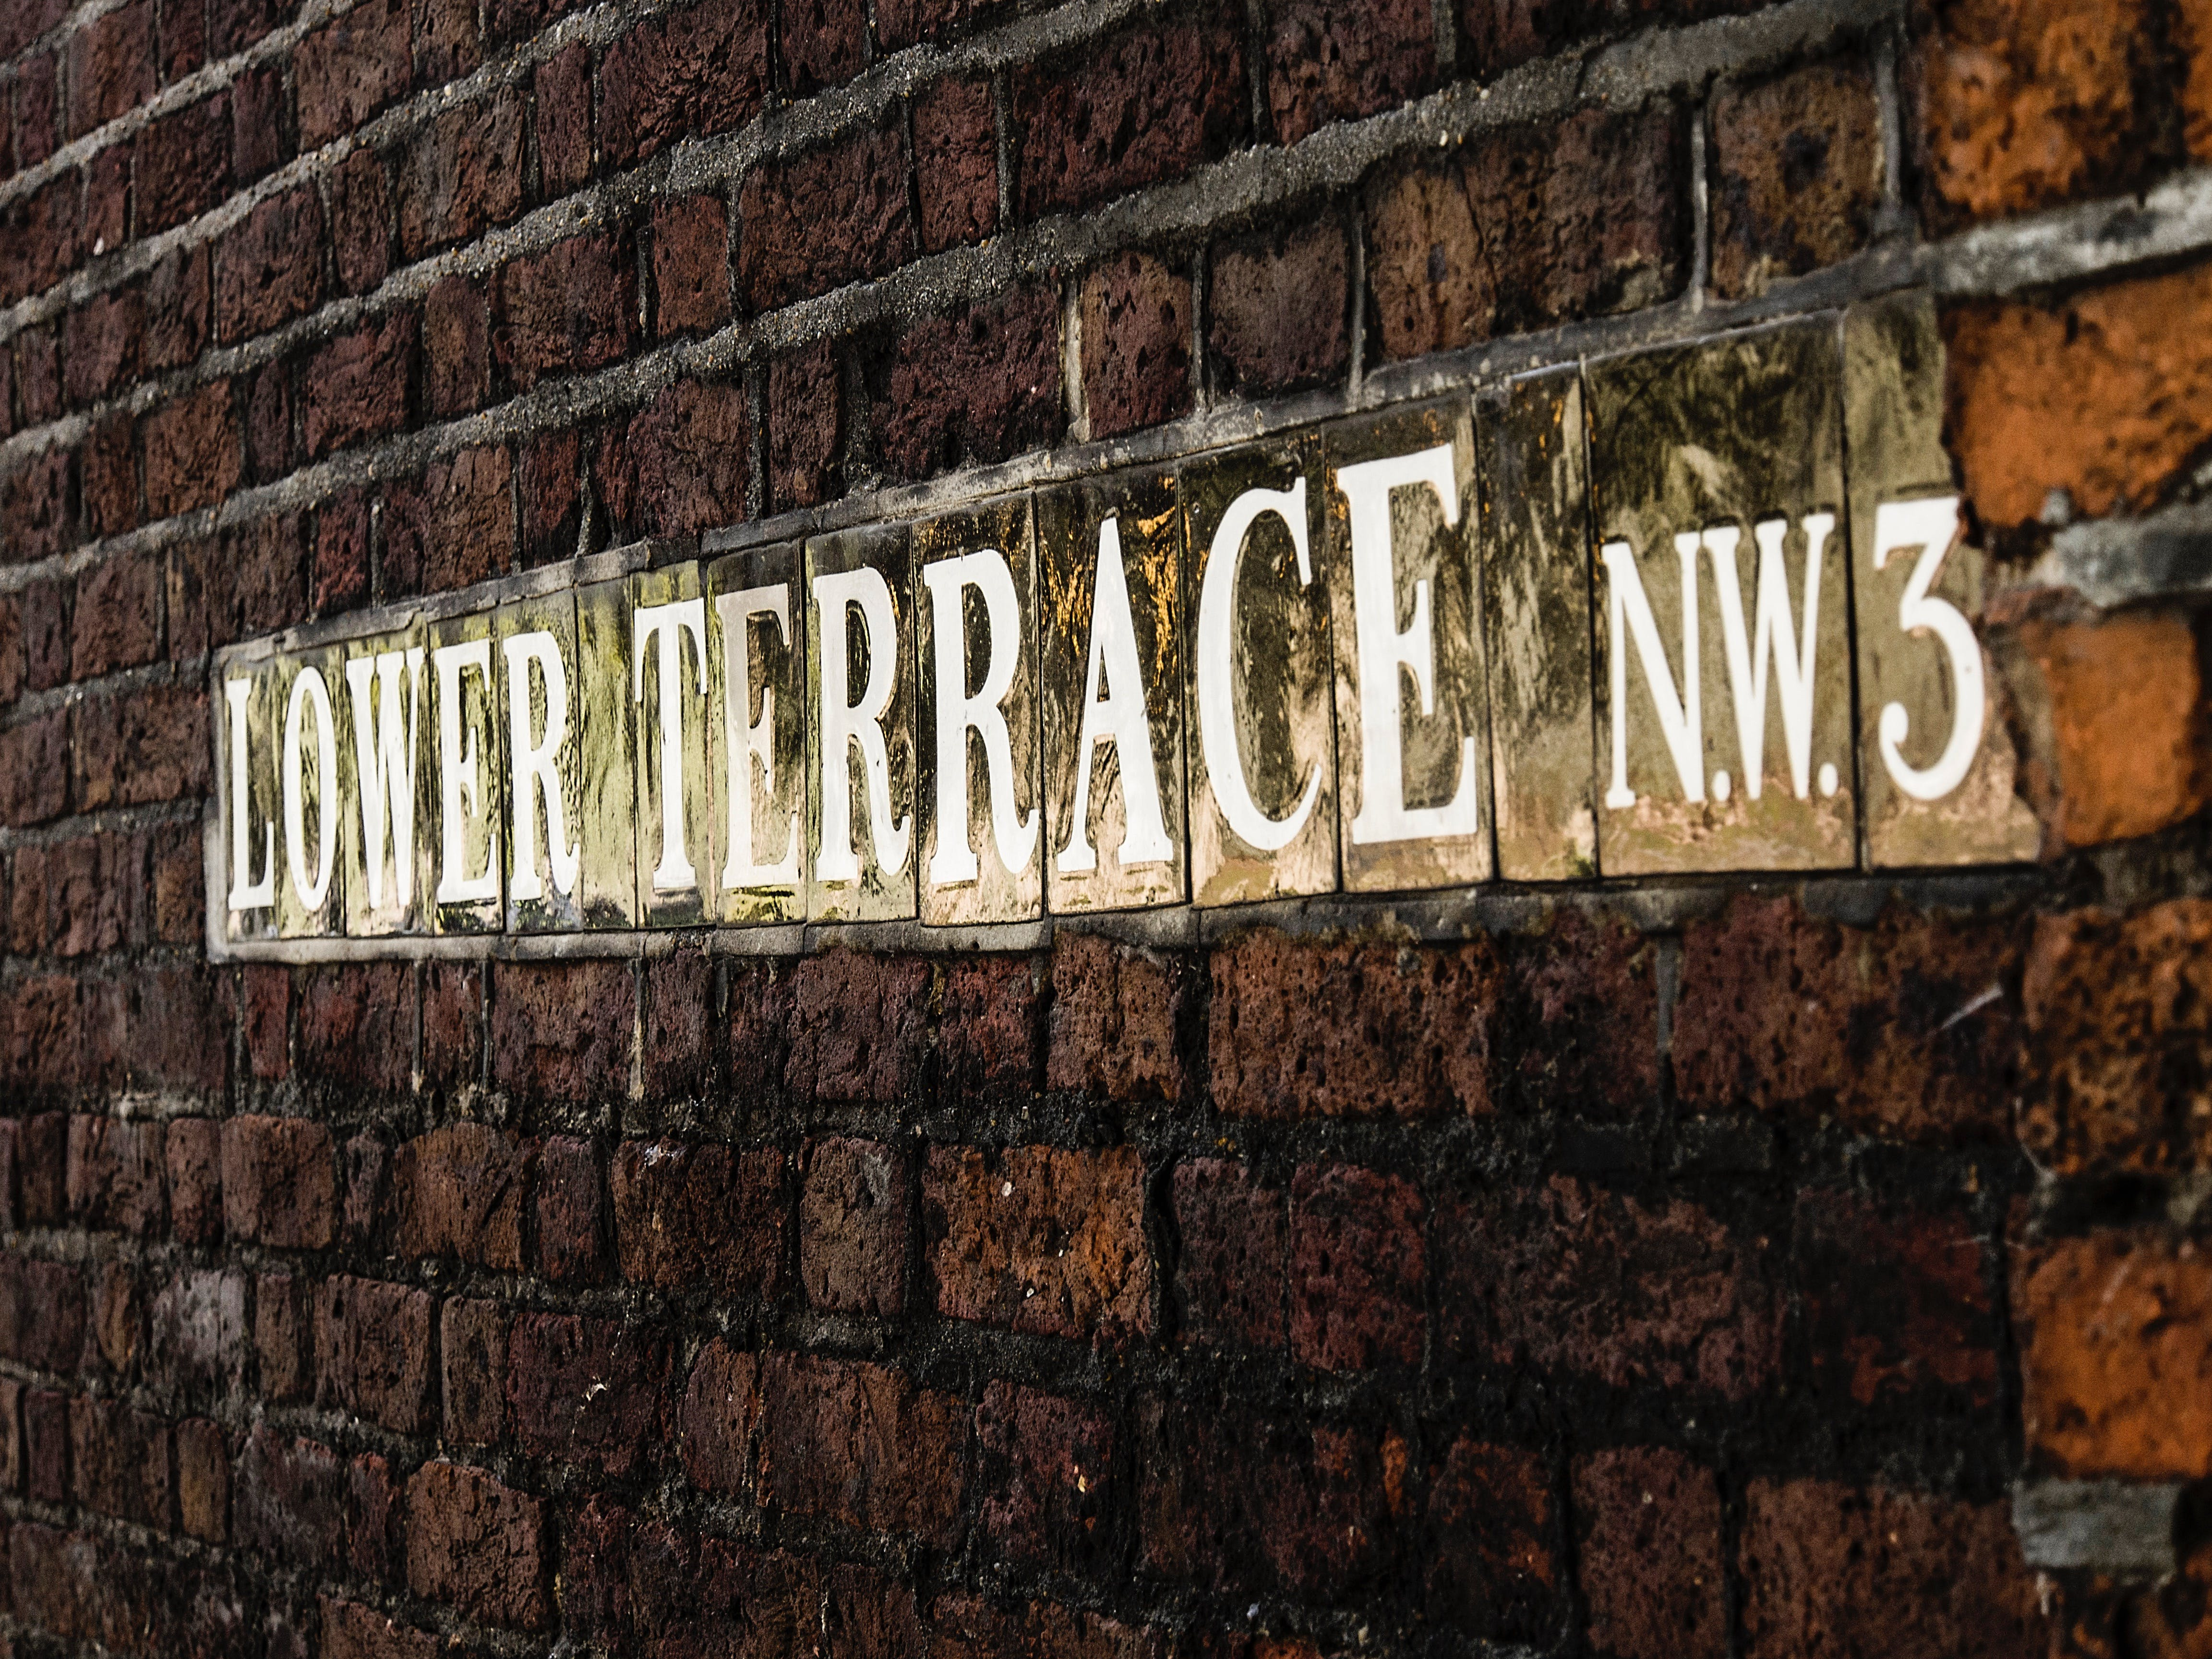 Lower Terrace Signage On Brick Wall